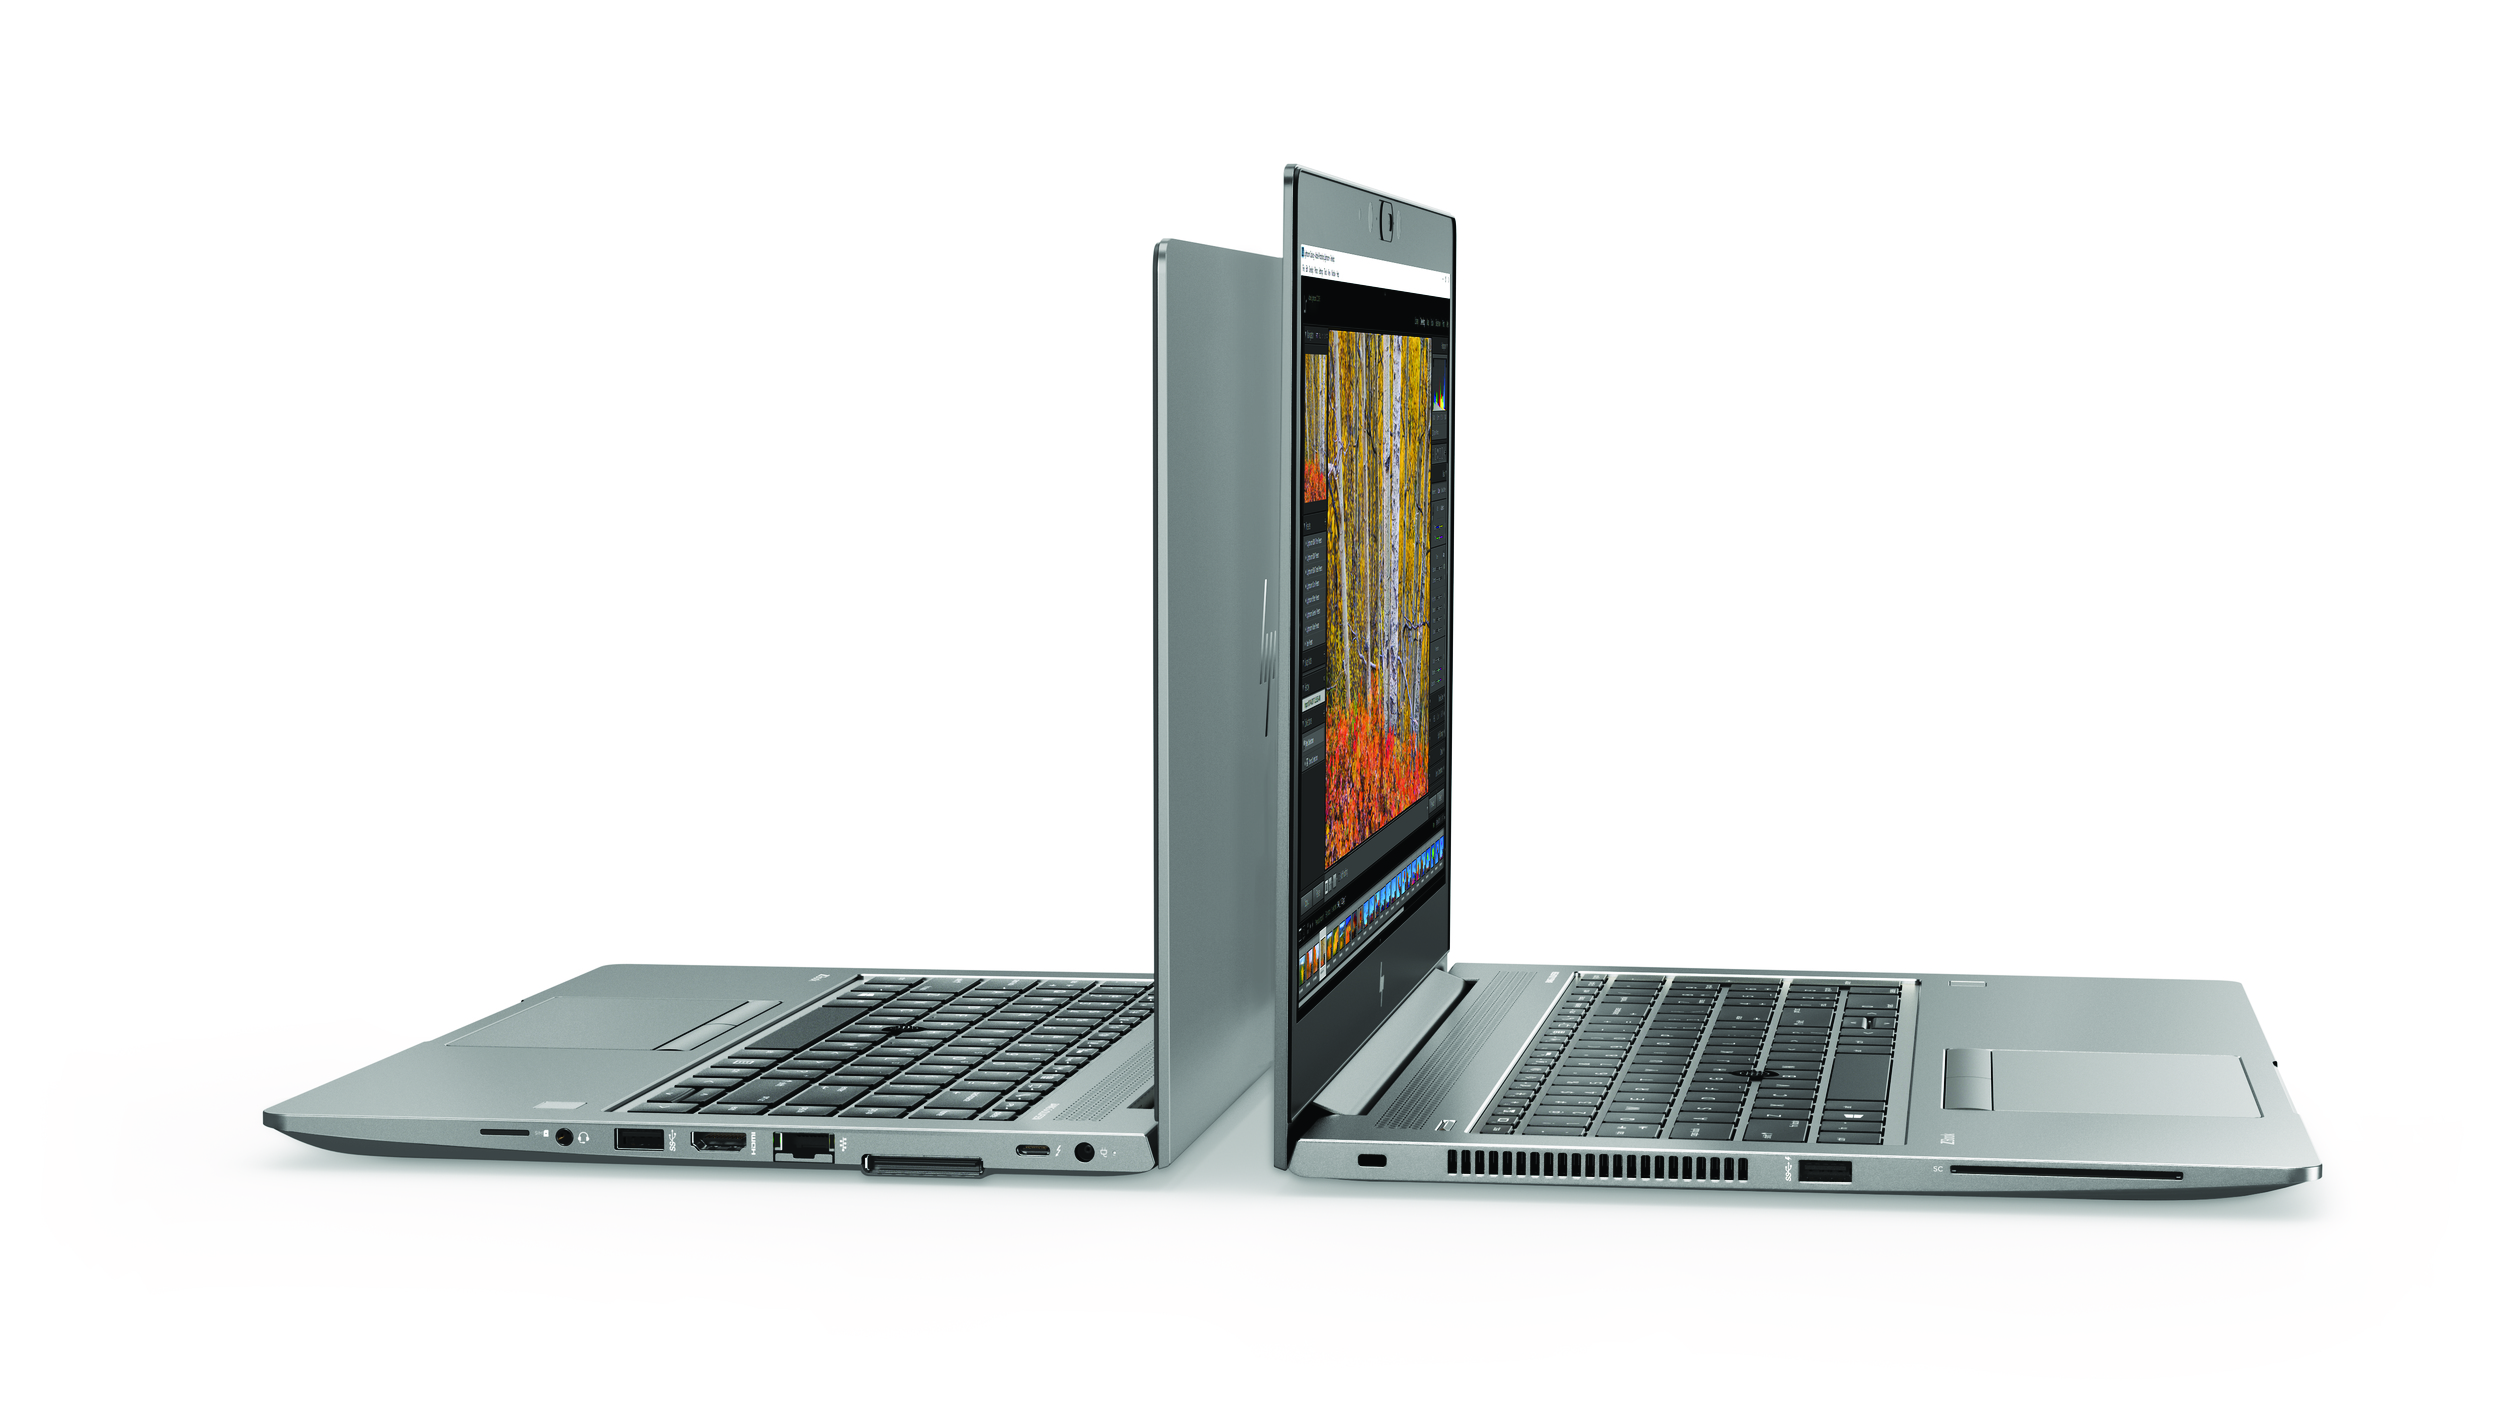 HP Announces World's Thinnest Mobile Workstation